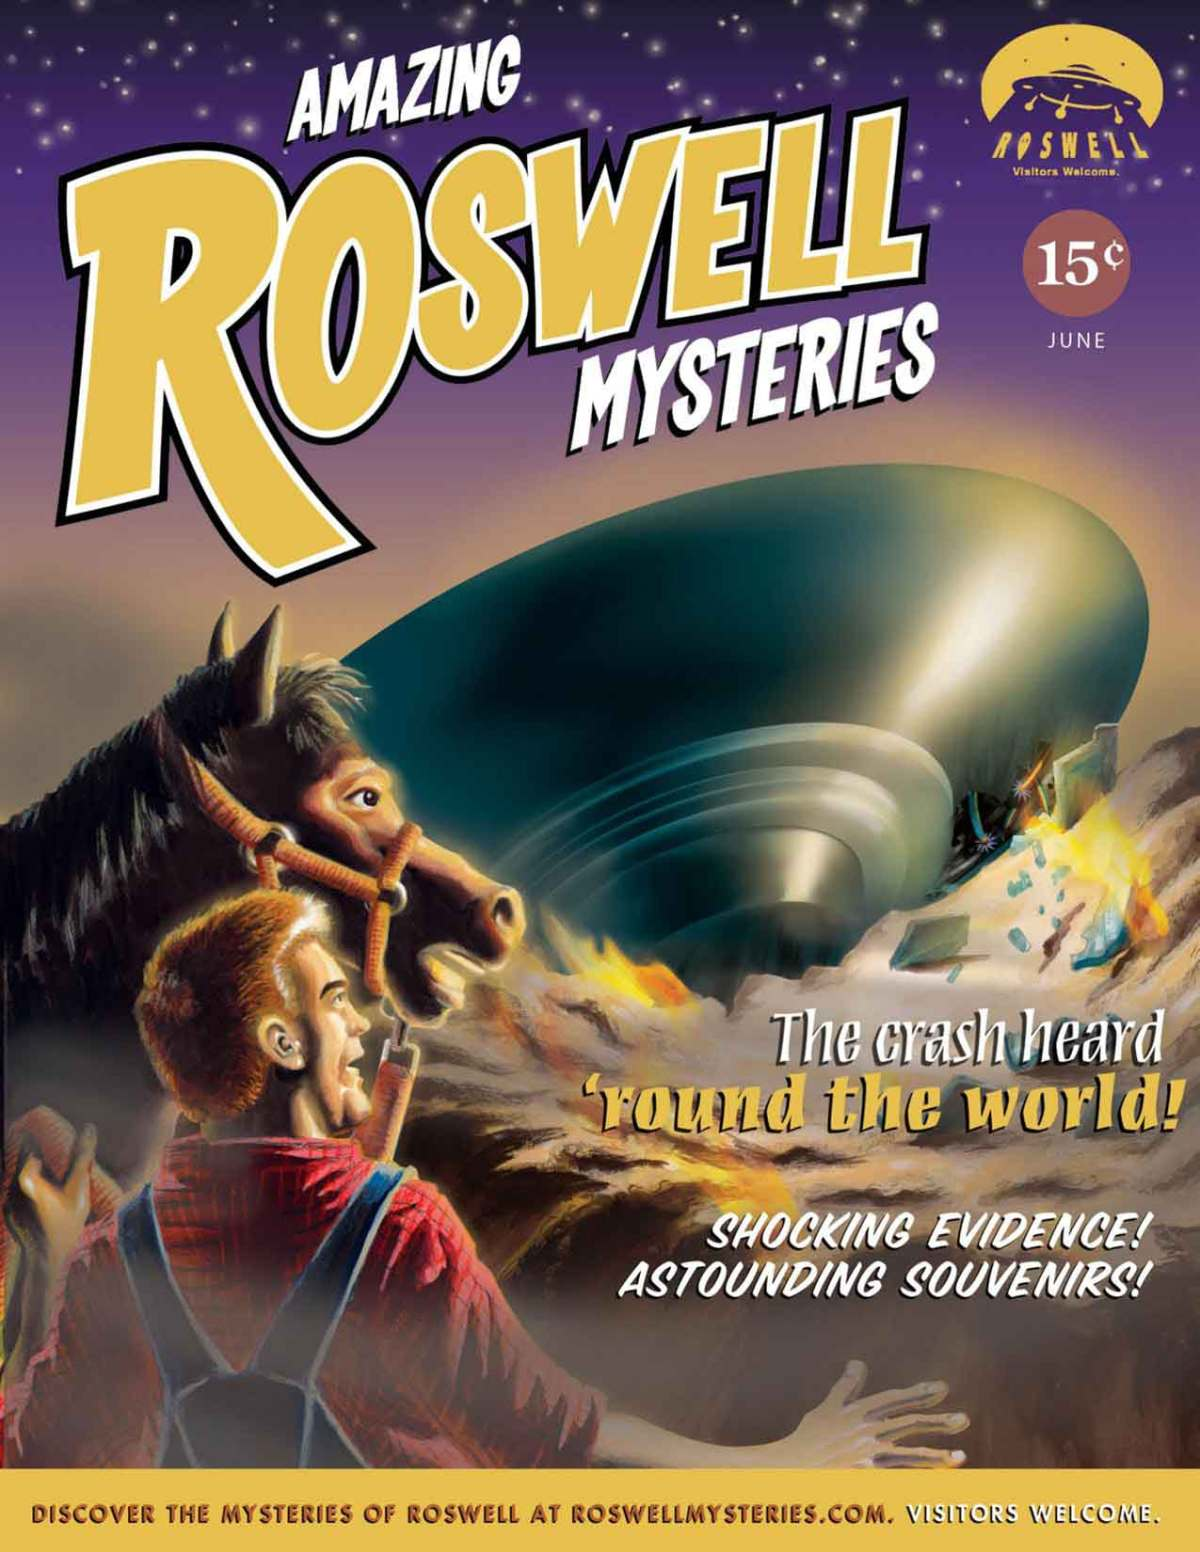 Amazing Roswell Mysteries: UFO!